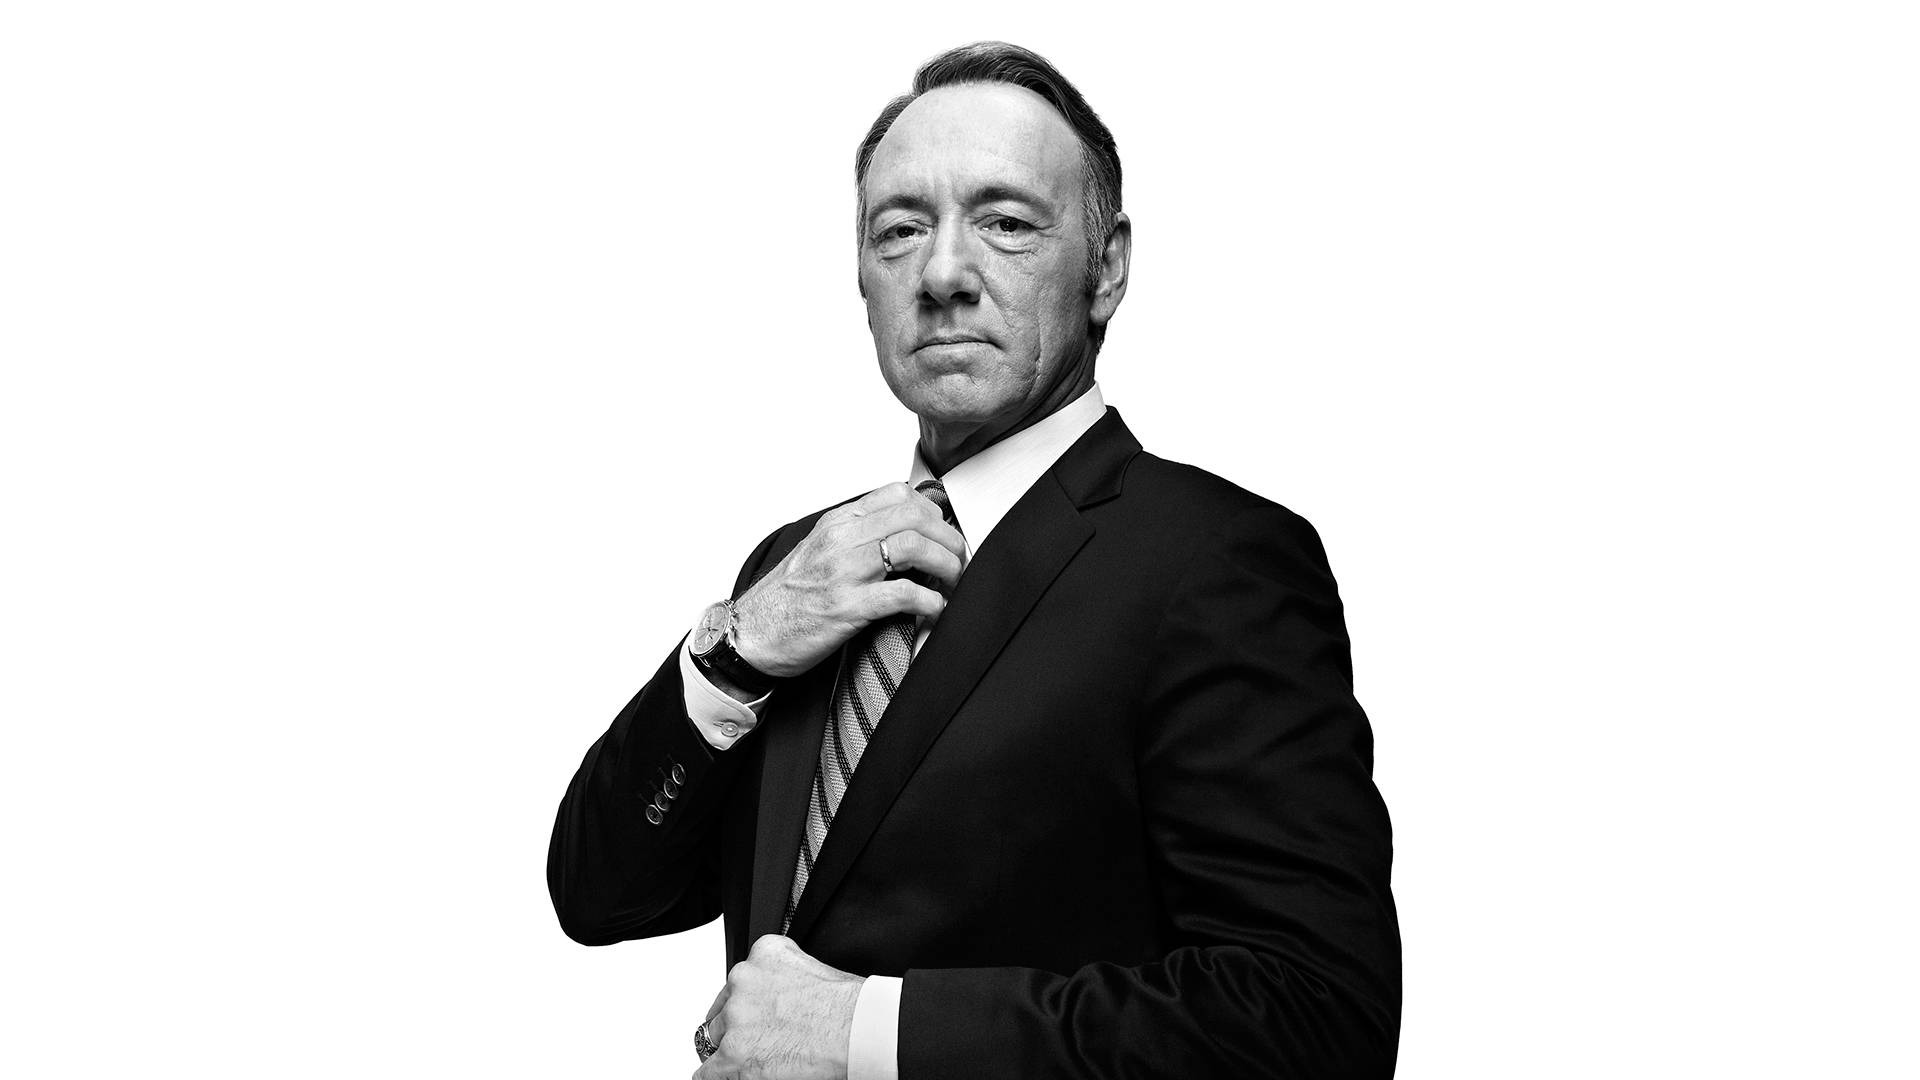 1920x1080 - Kevin Spacey Wallpapers 23